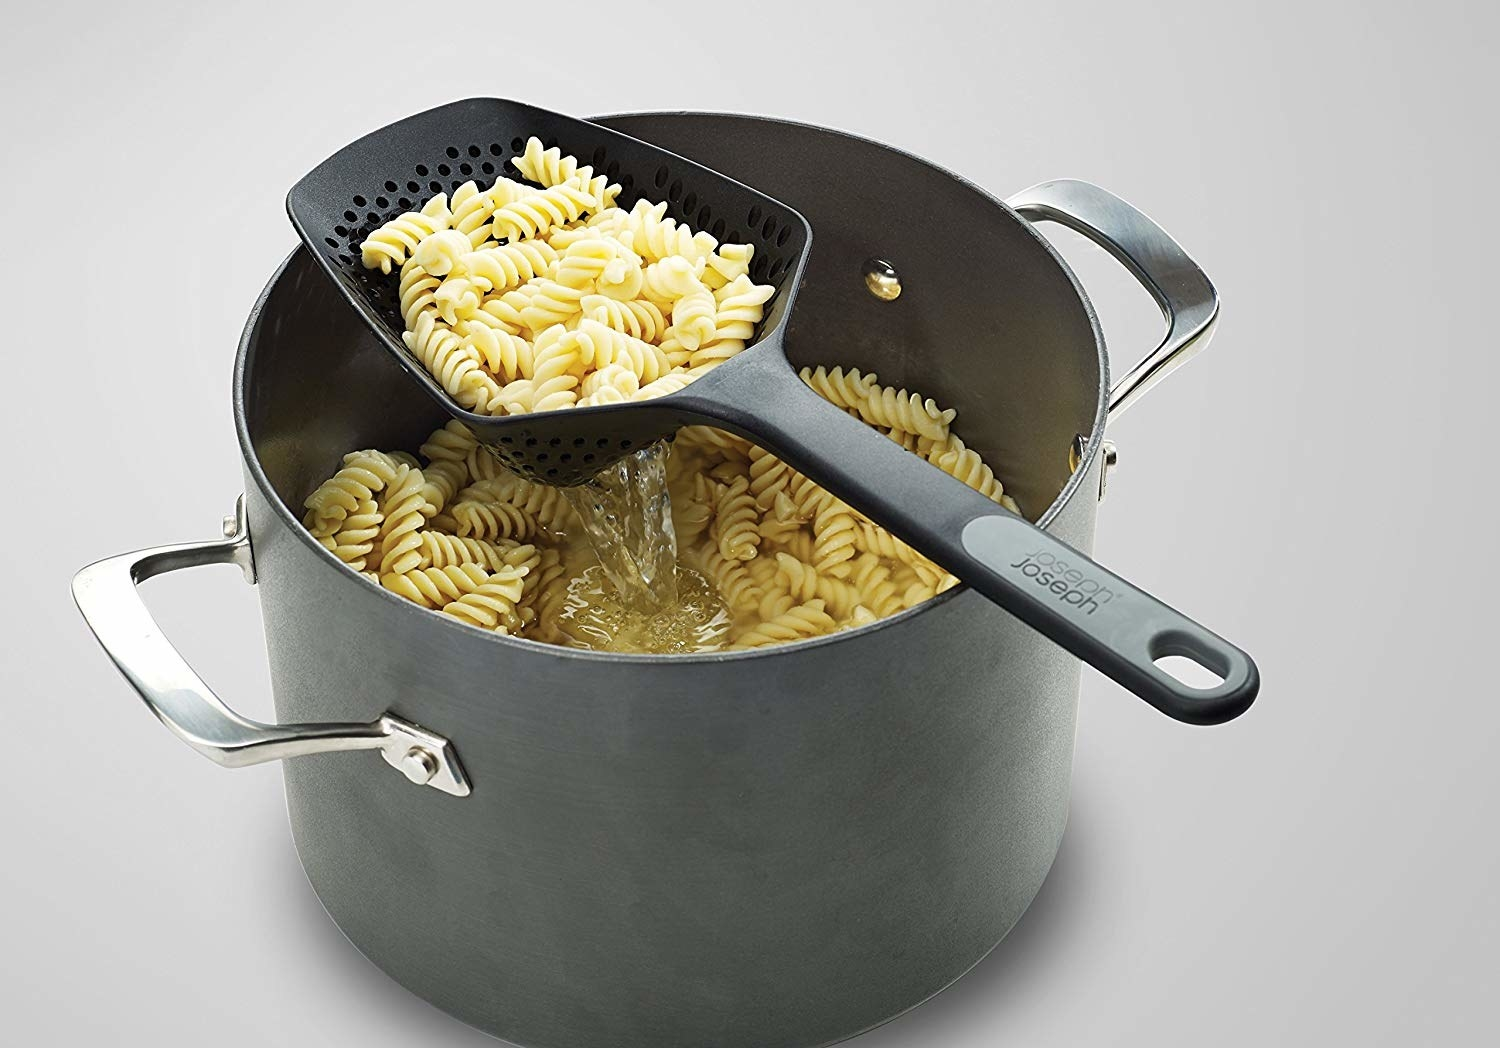 The scoop with draining fusilli in it, resting on top of a pot of pasta and water,